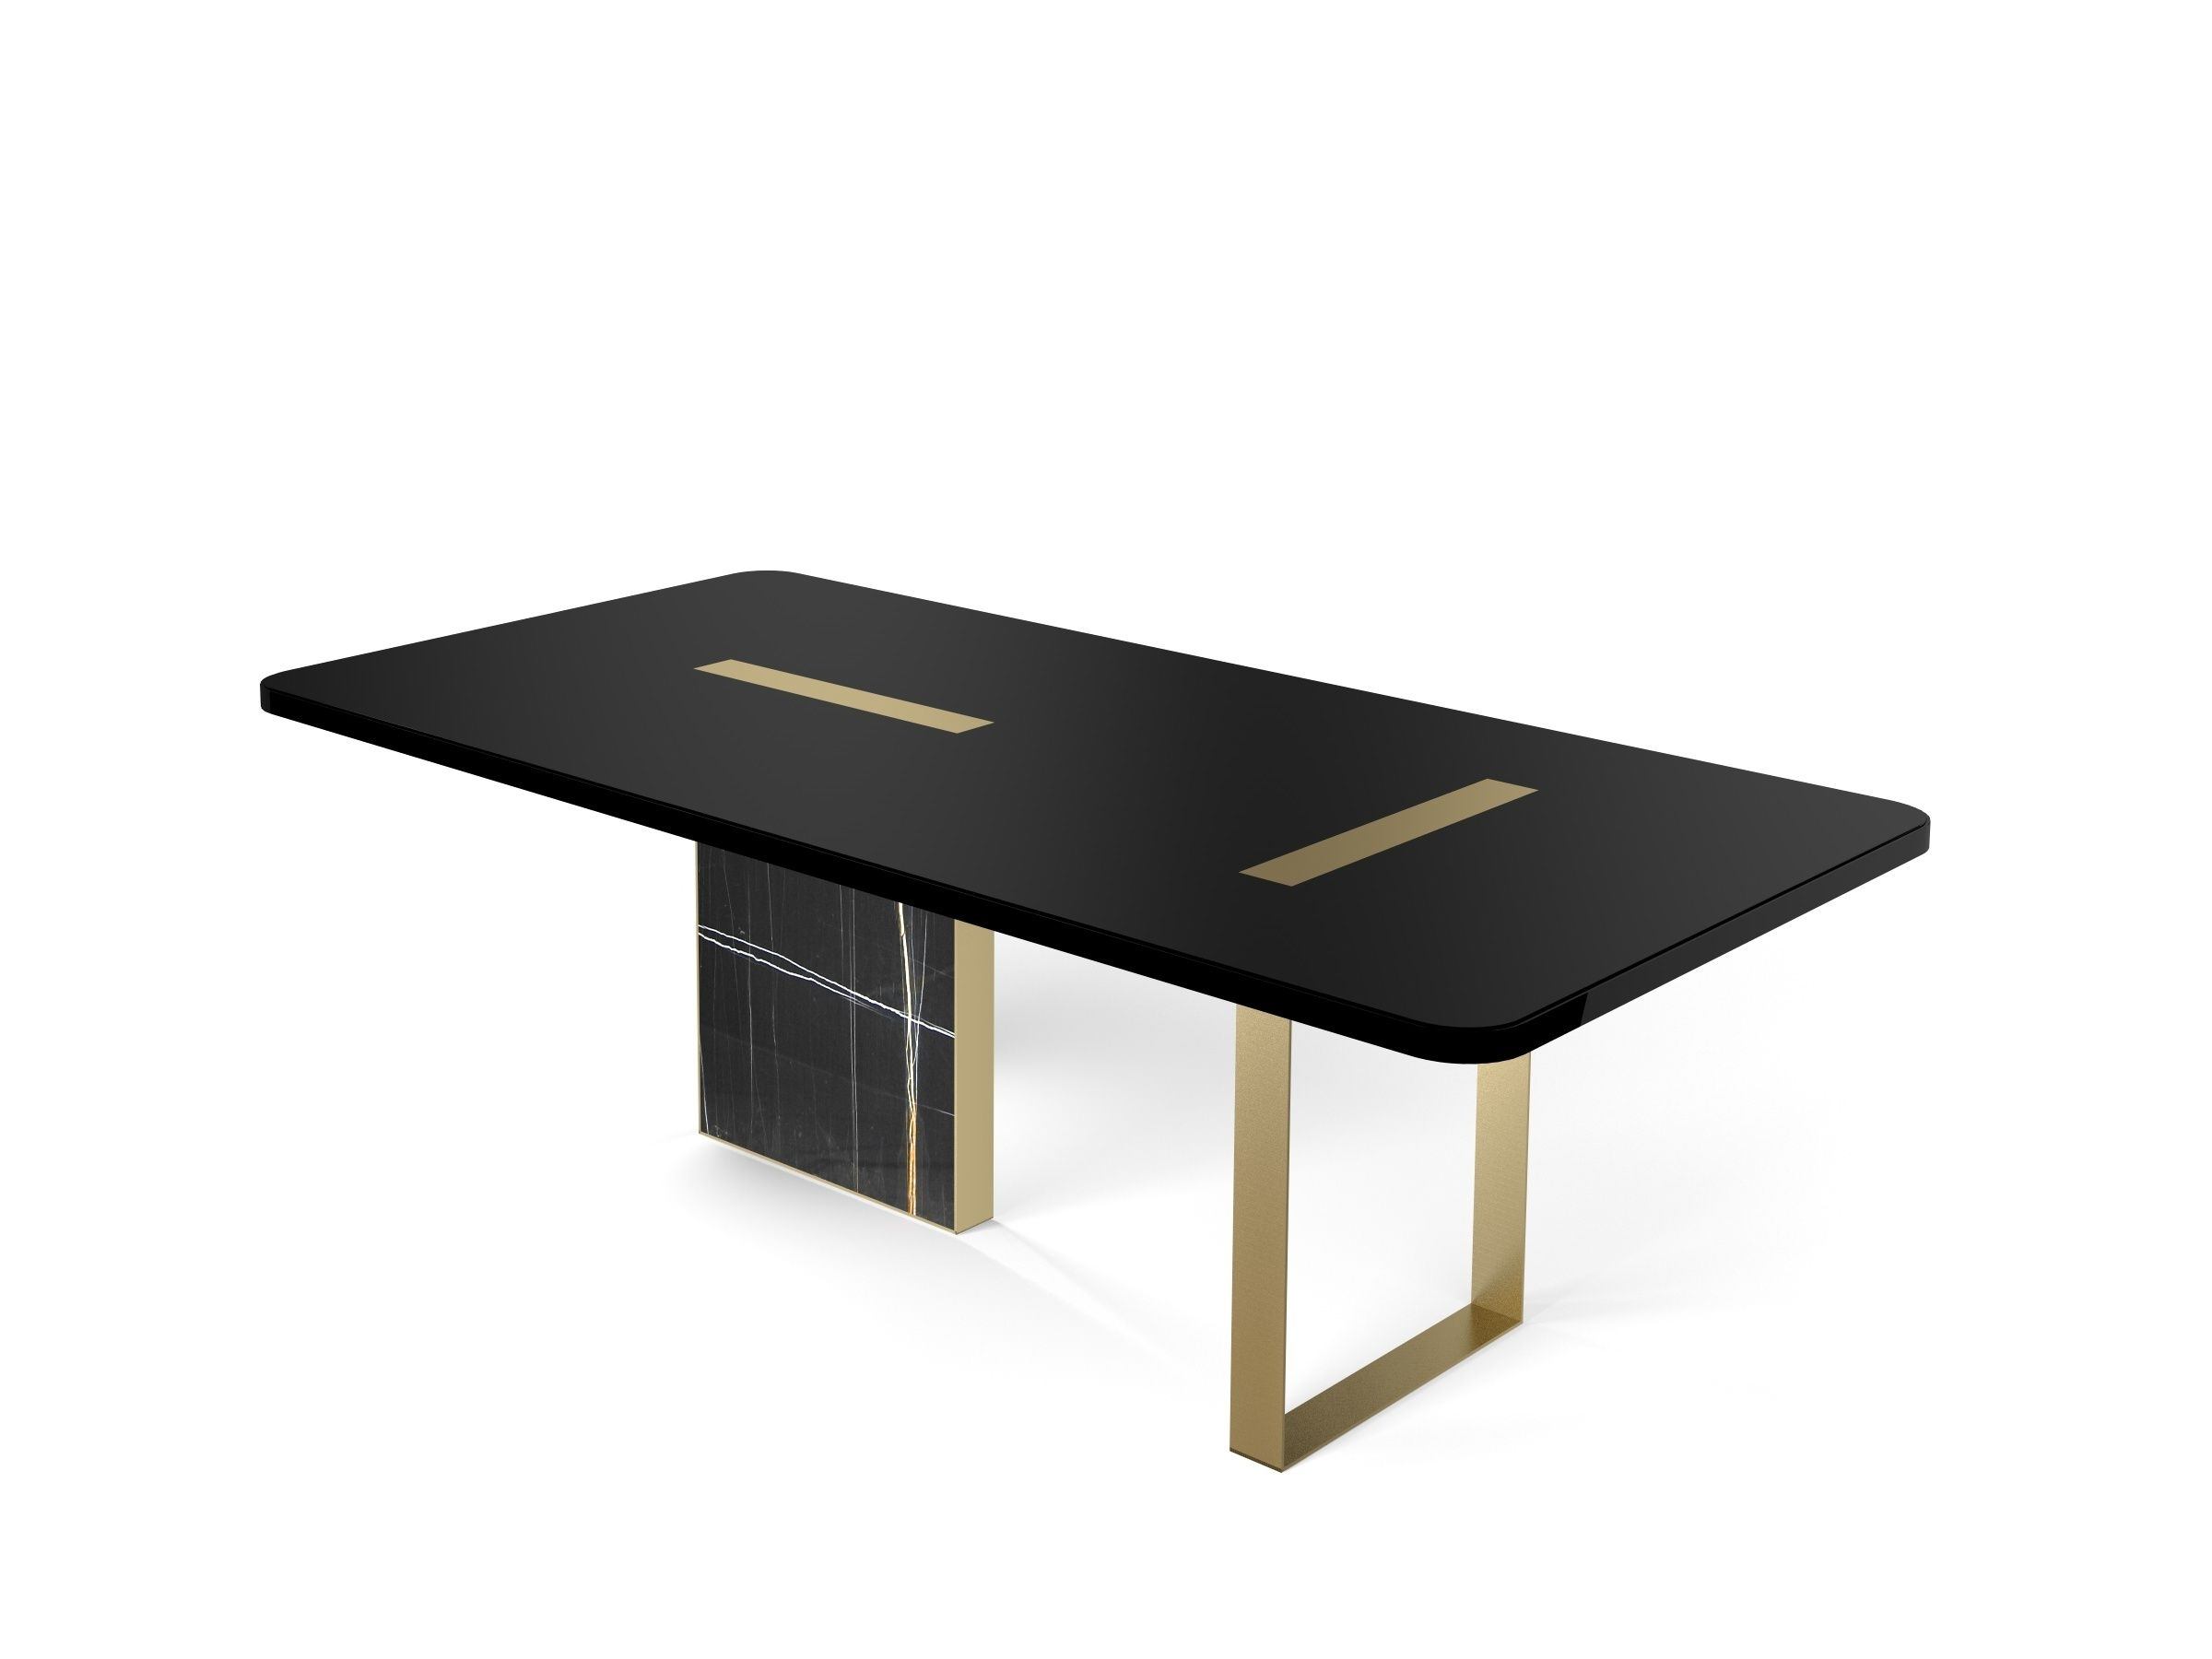 Tyron Dining Table 220X110 In Black Laquered Wood With Brushed Brass Throughout 2018 Laurent Round Dining Tables (View 8 of 25)